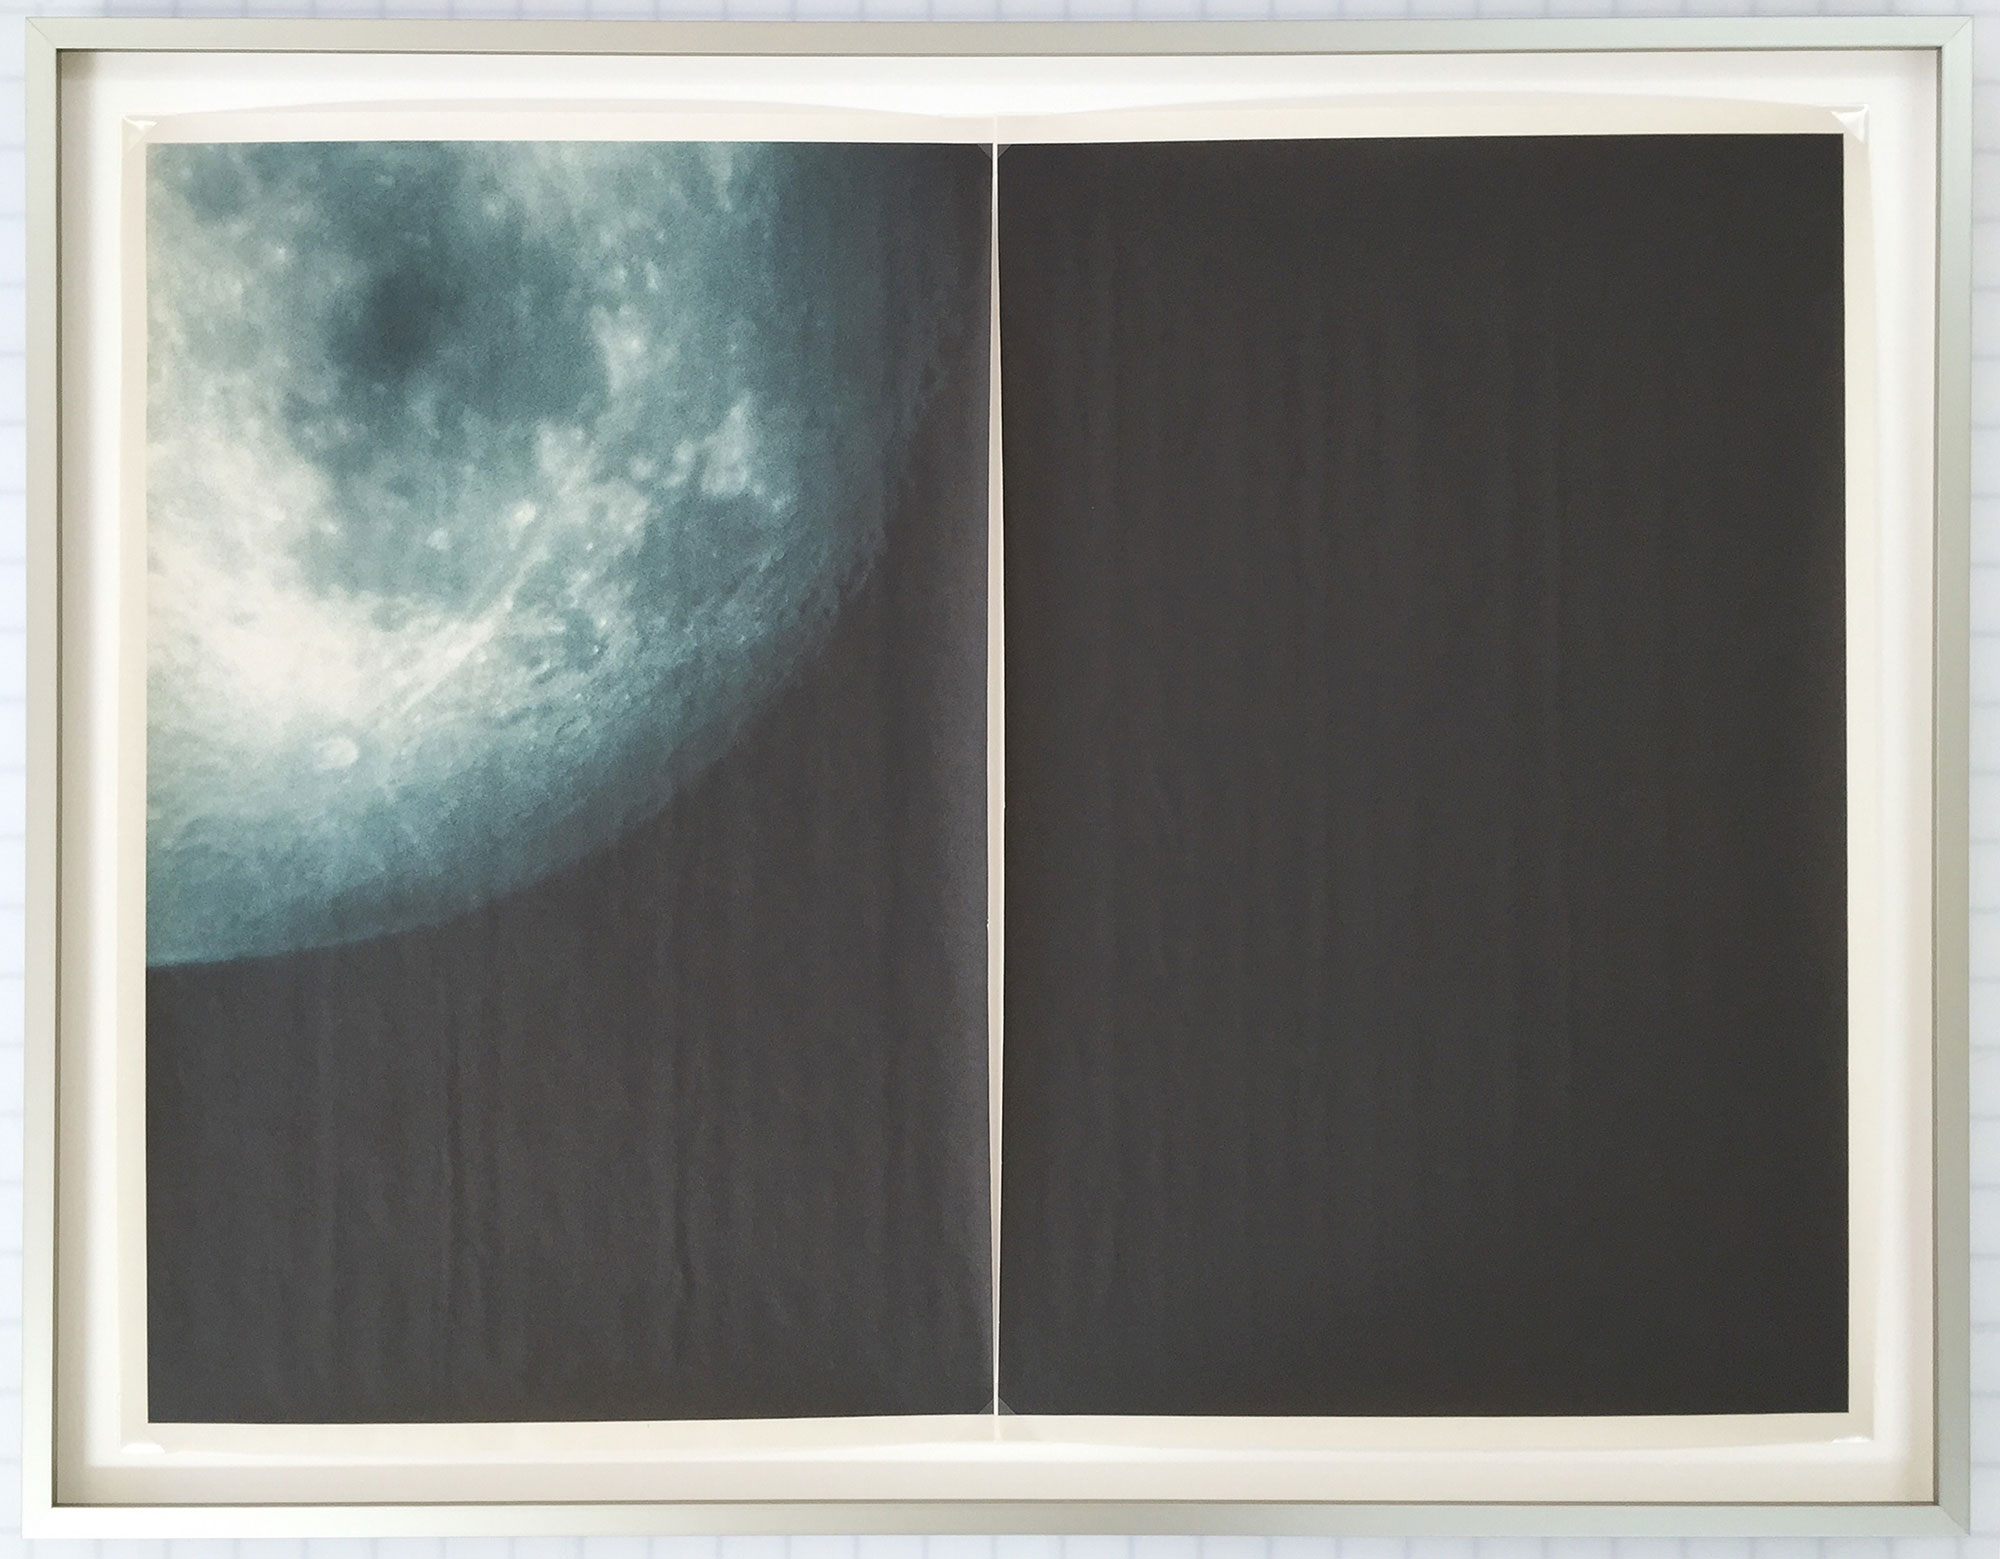 BS_7366 , unique diptych pigment print on newsprint, aluminum artist frame, 20.75 x 20 inches, 2015